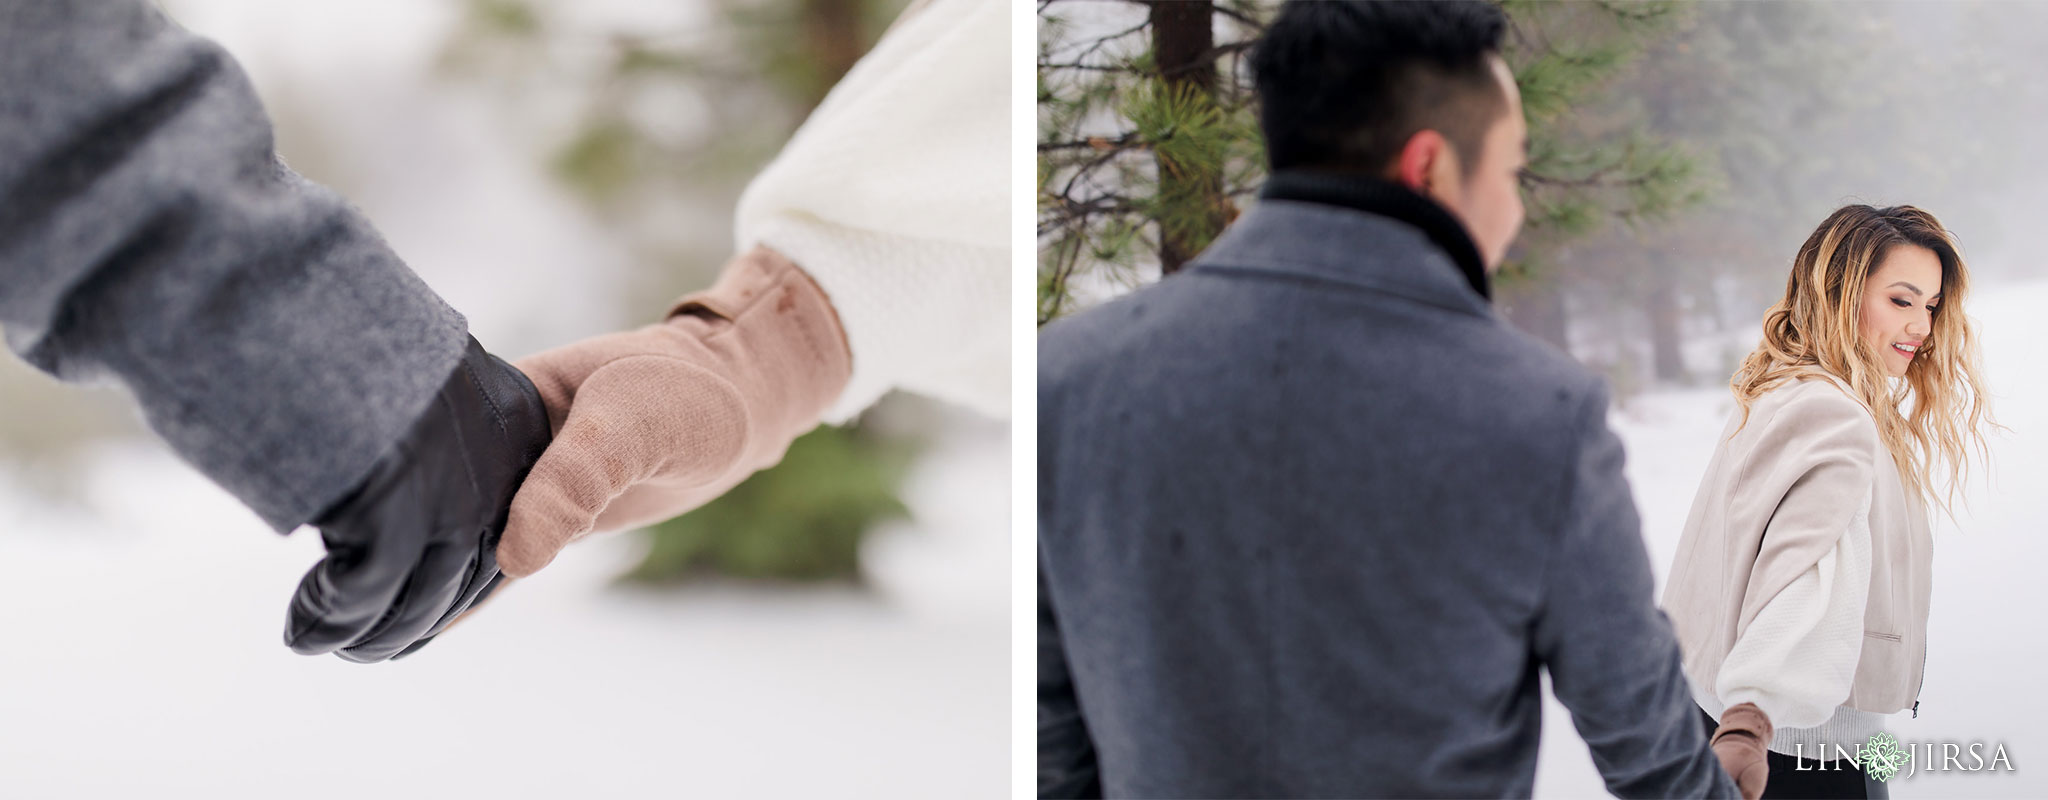 zbf Green Valley Lake Snowy Engagement Photography